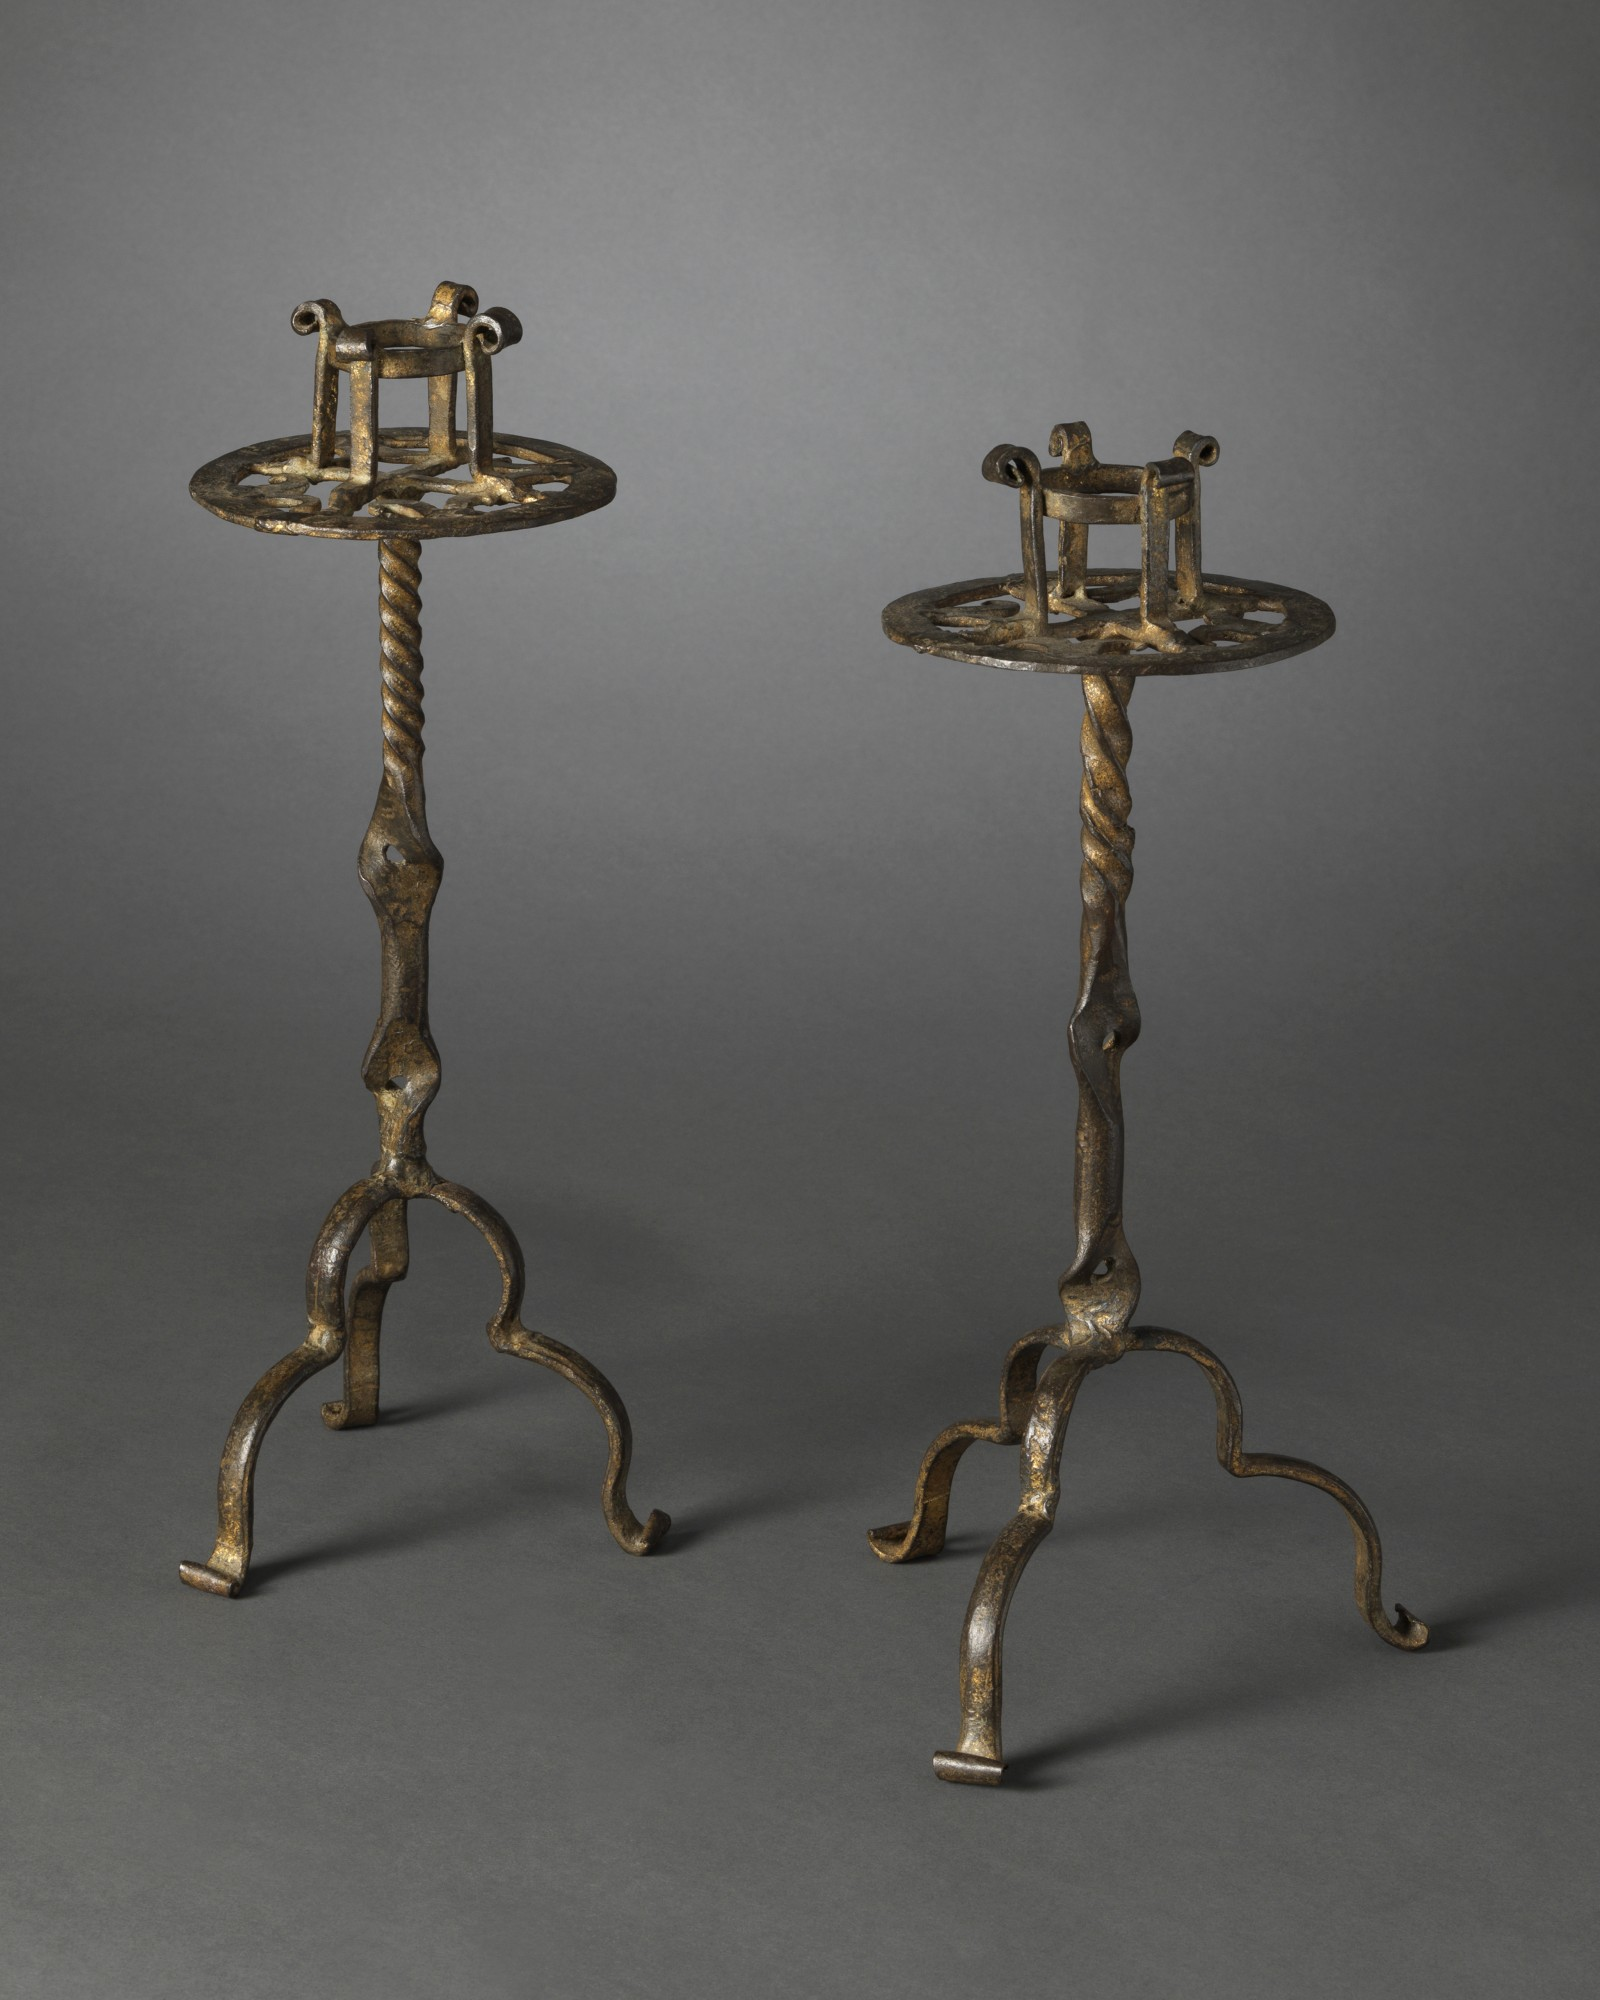 A Pair of Pricket Candlesticks, Southern Spain, mid 15th century